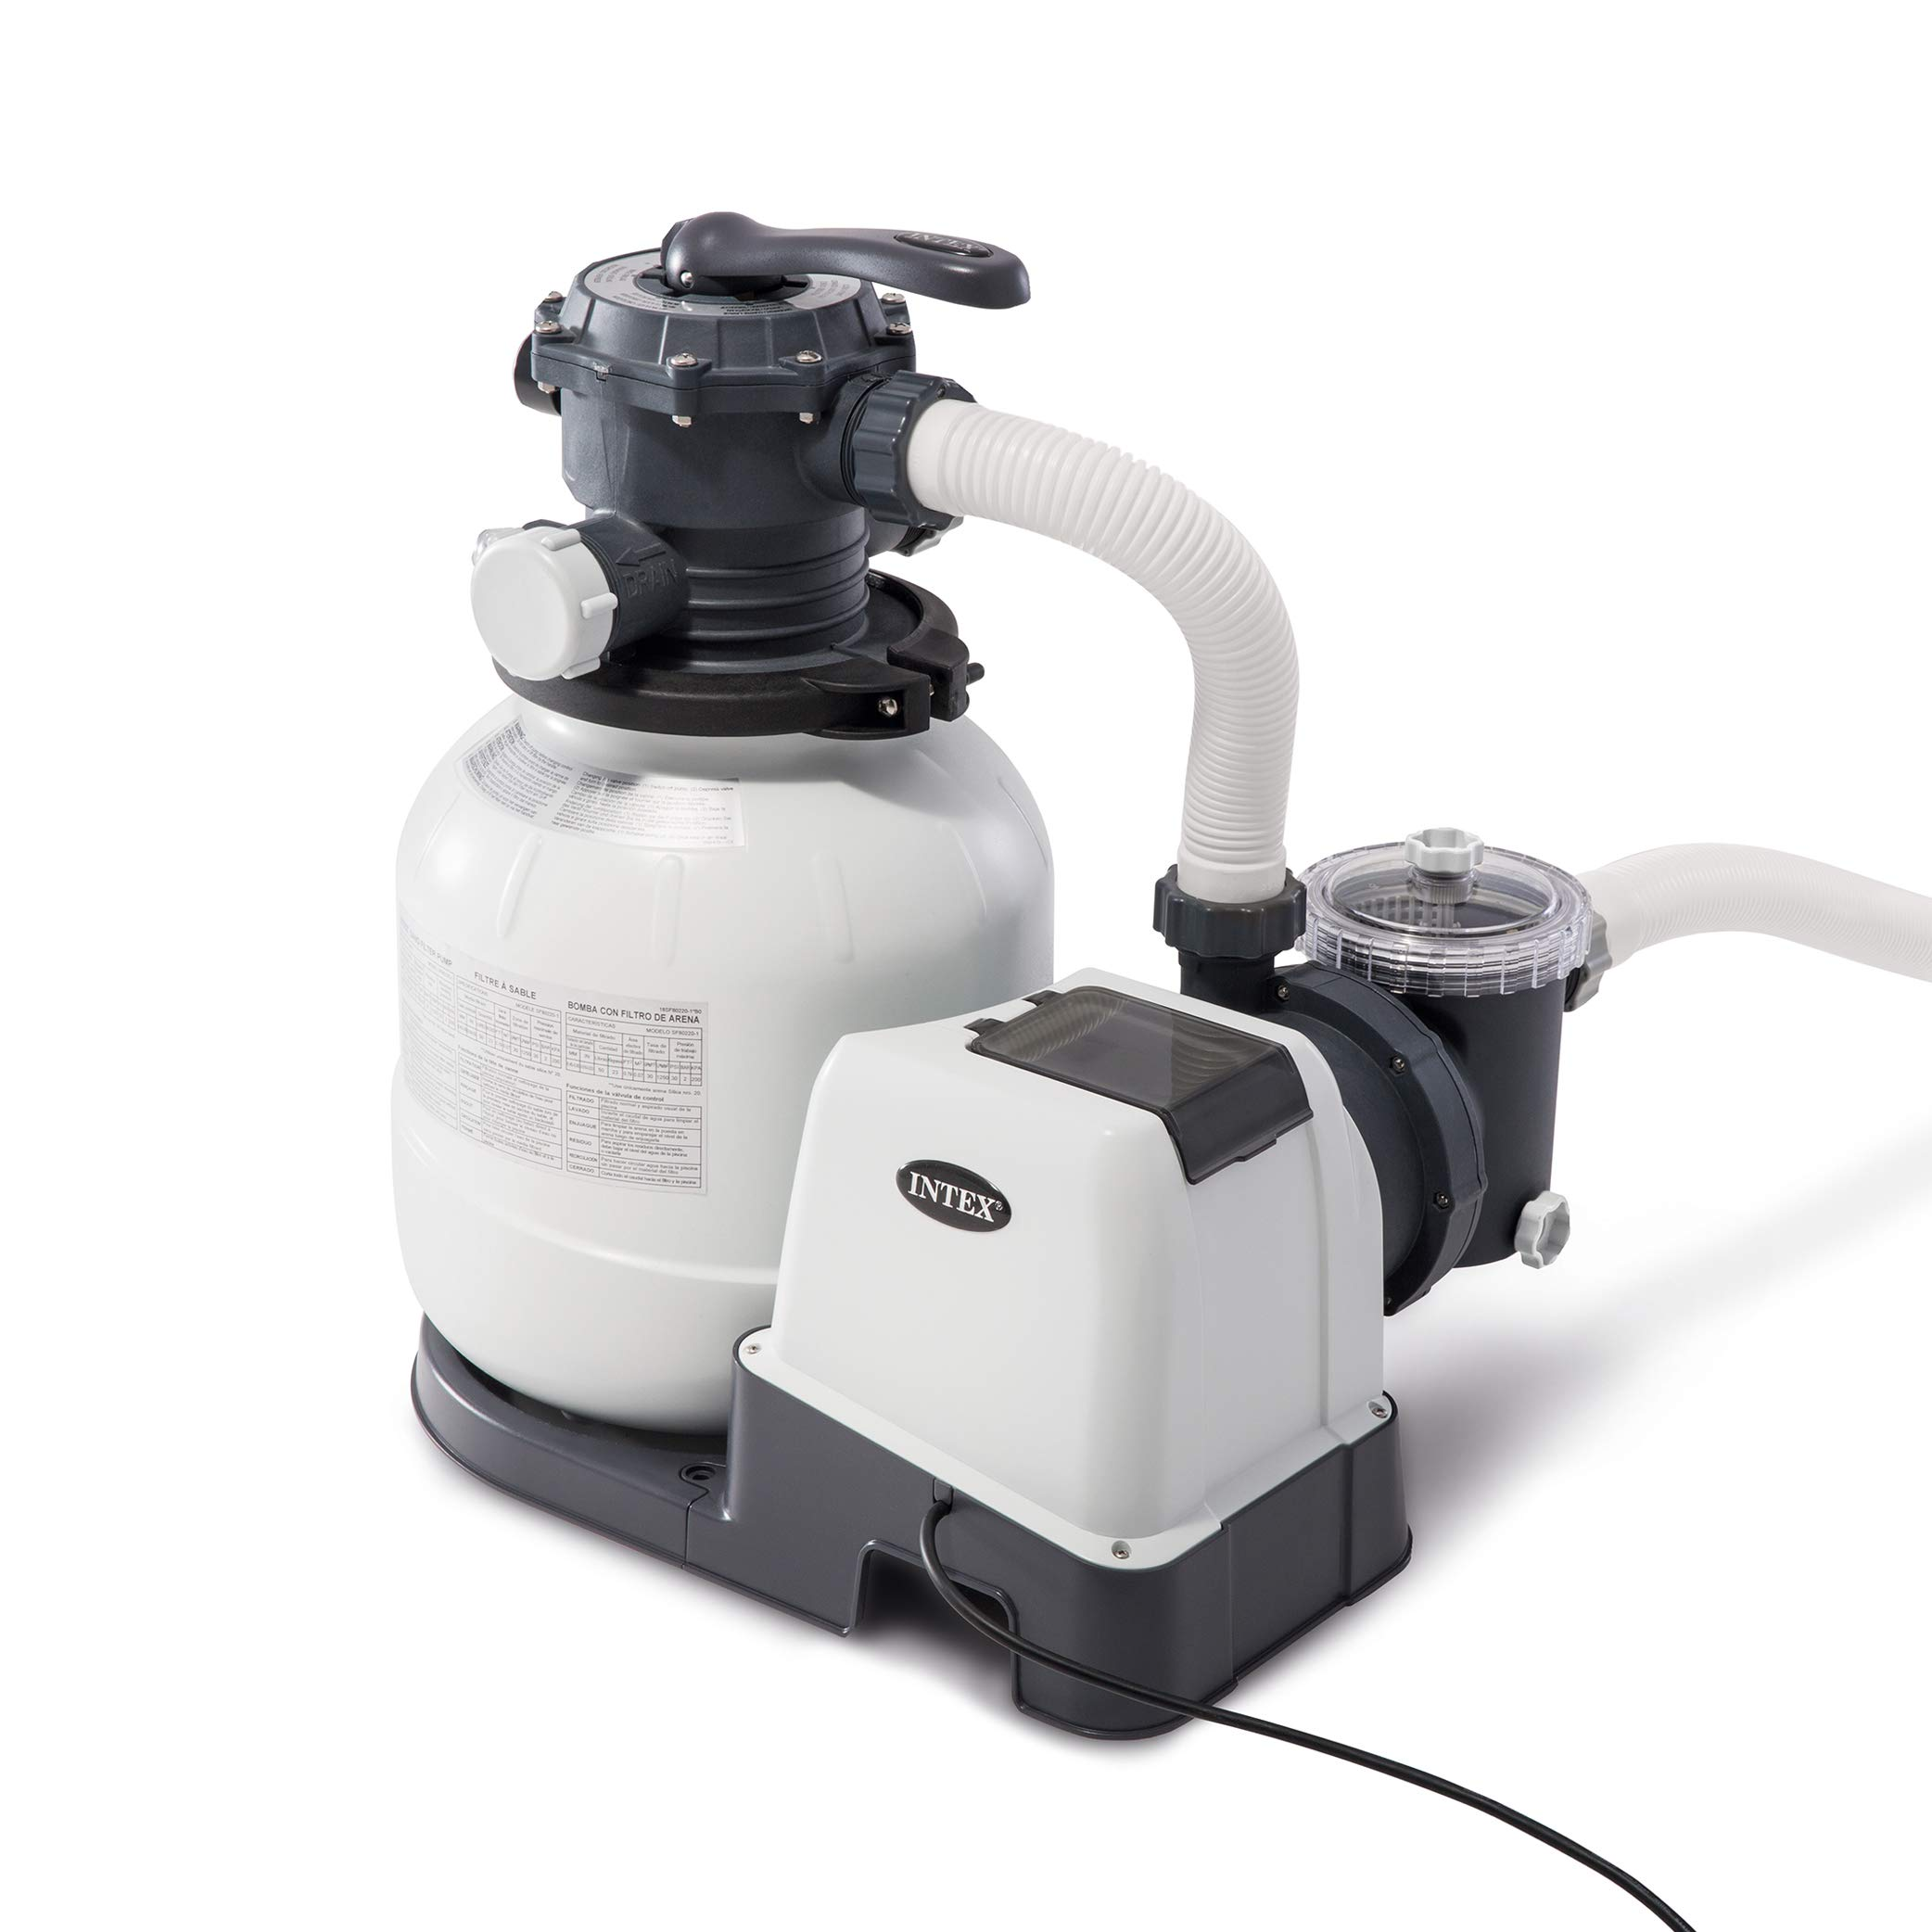 Intex Krystal Clear Sand Filter Pump for Above Ground Pools, 12-inch, 110-120V with GFCI by Intex